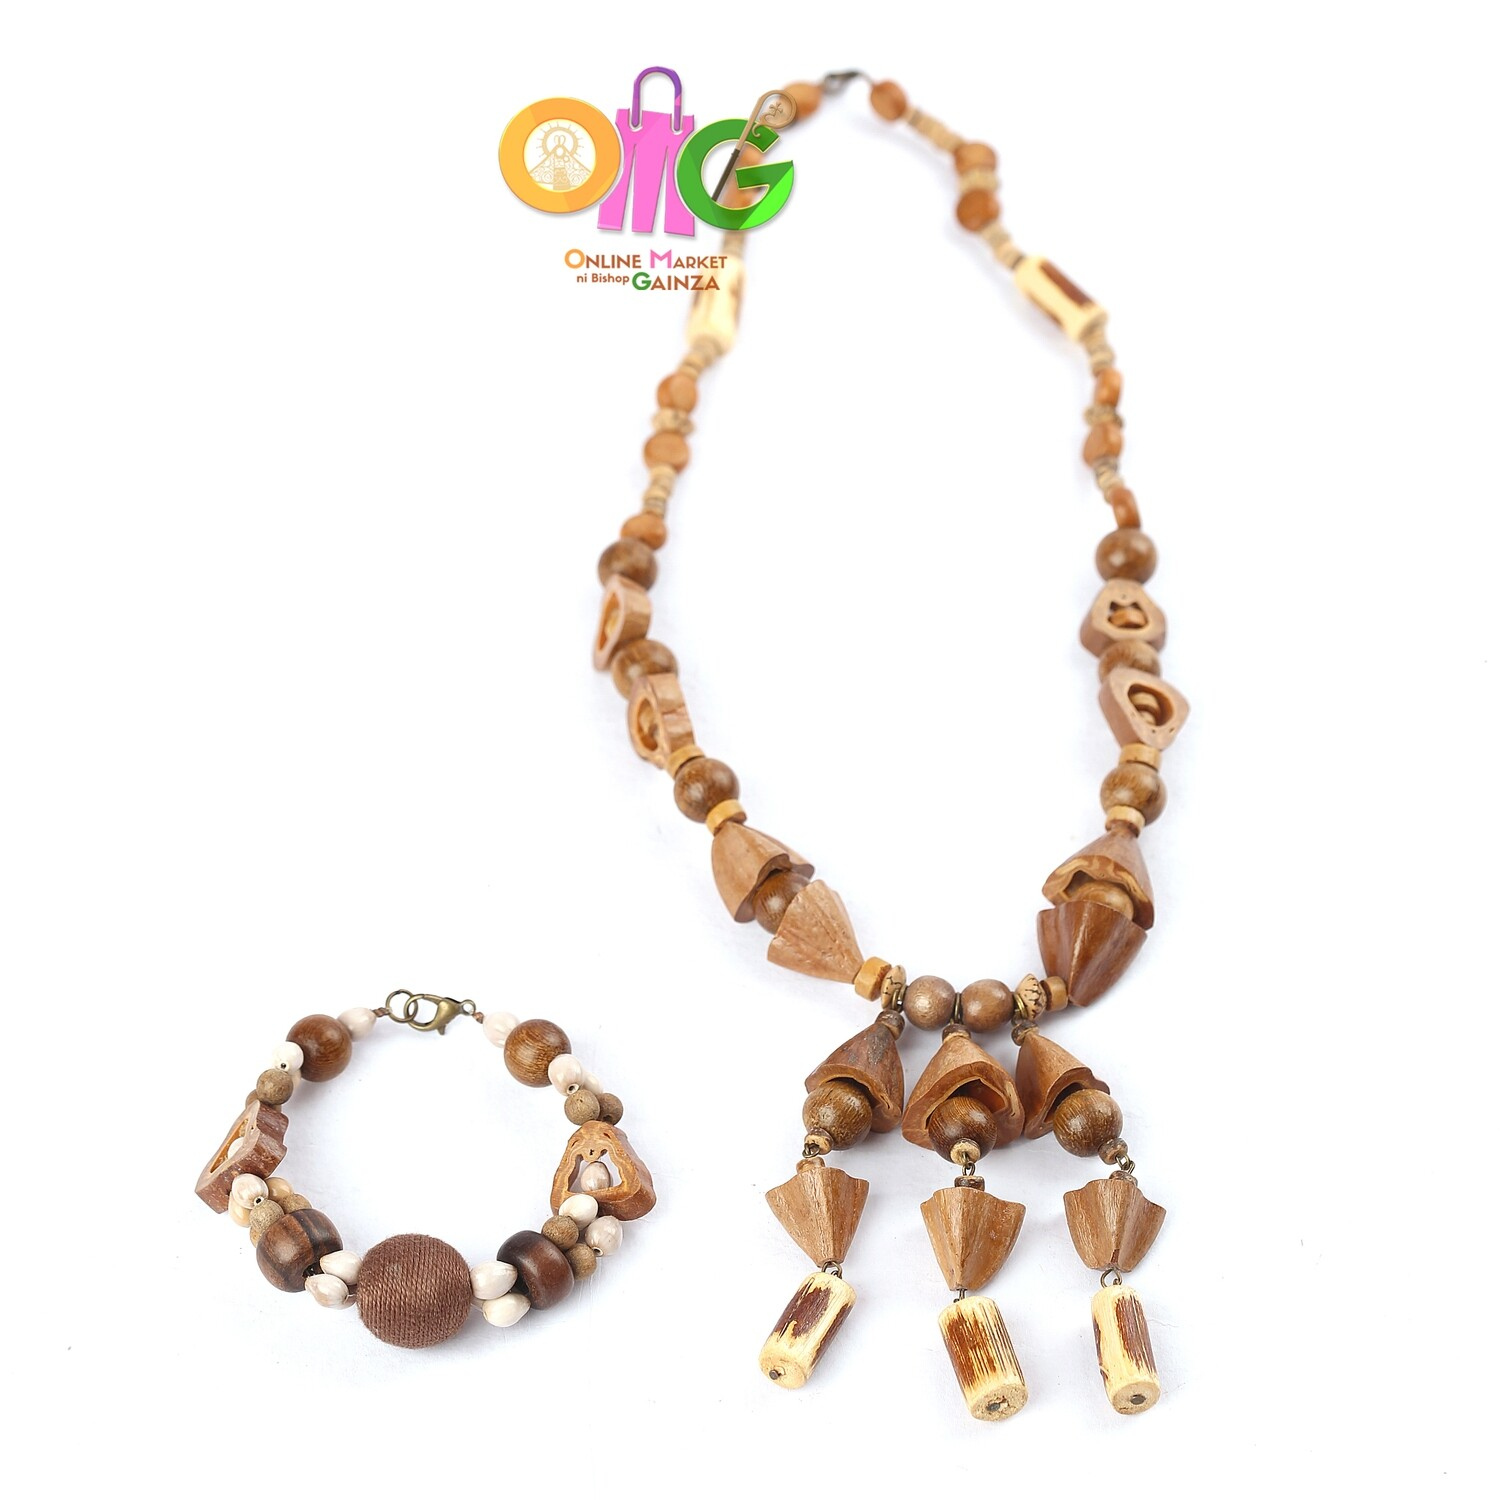 Mom Ofels Print & Crafts - 1 Necklace with Bracelet Set (Wood with Pili Shell)